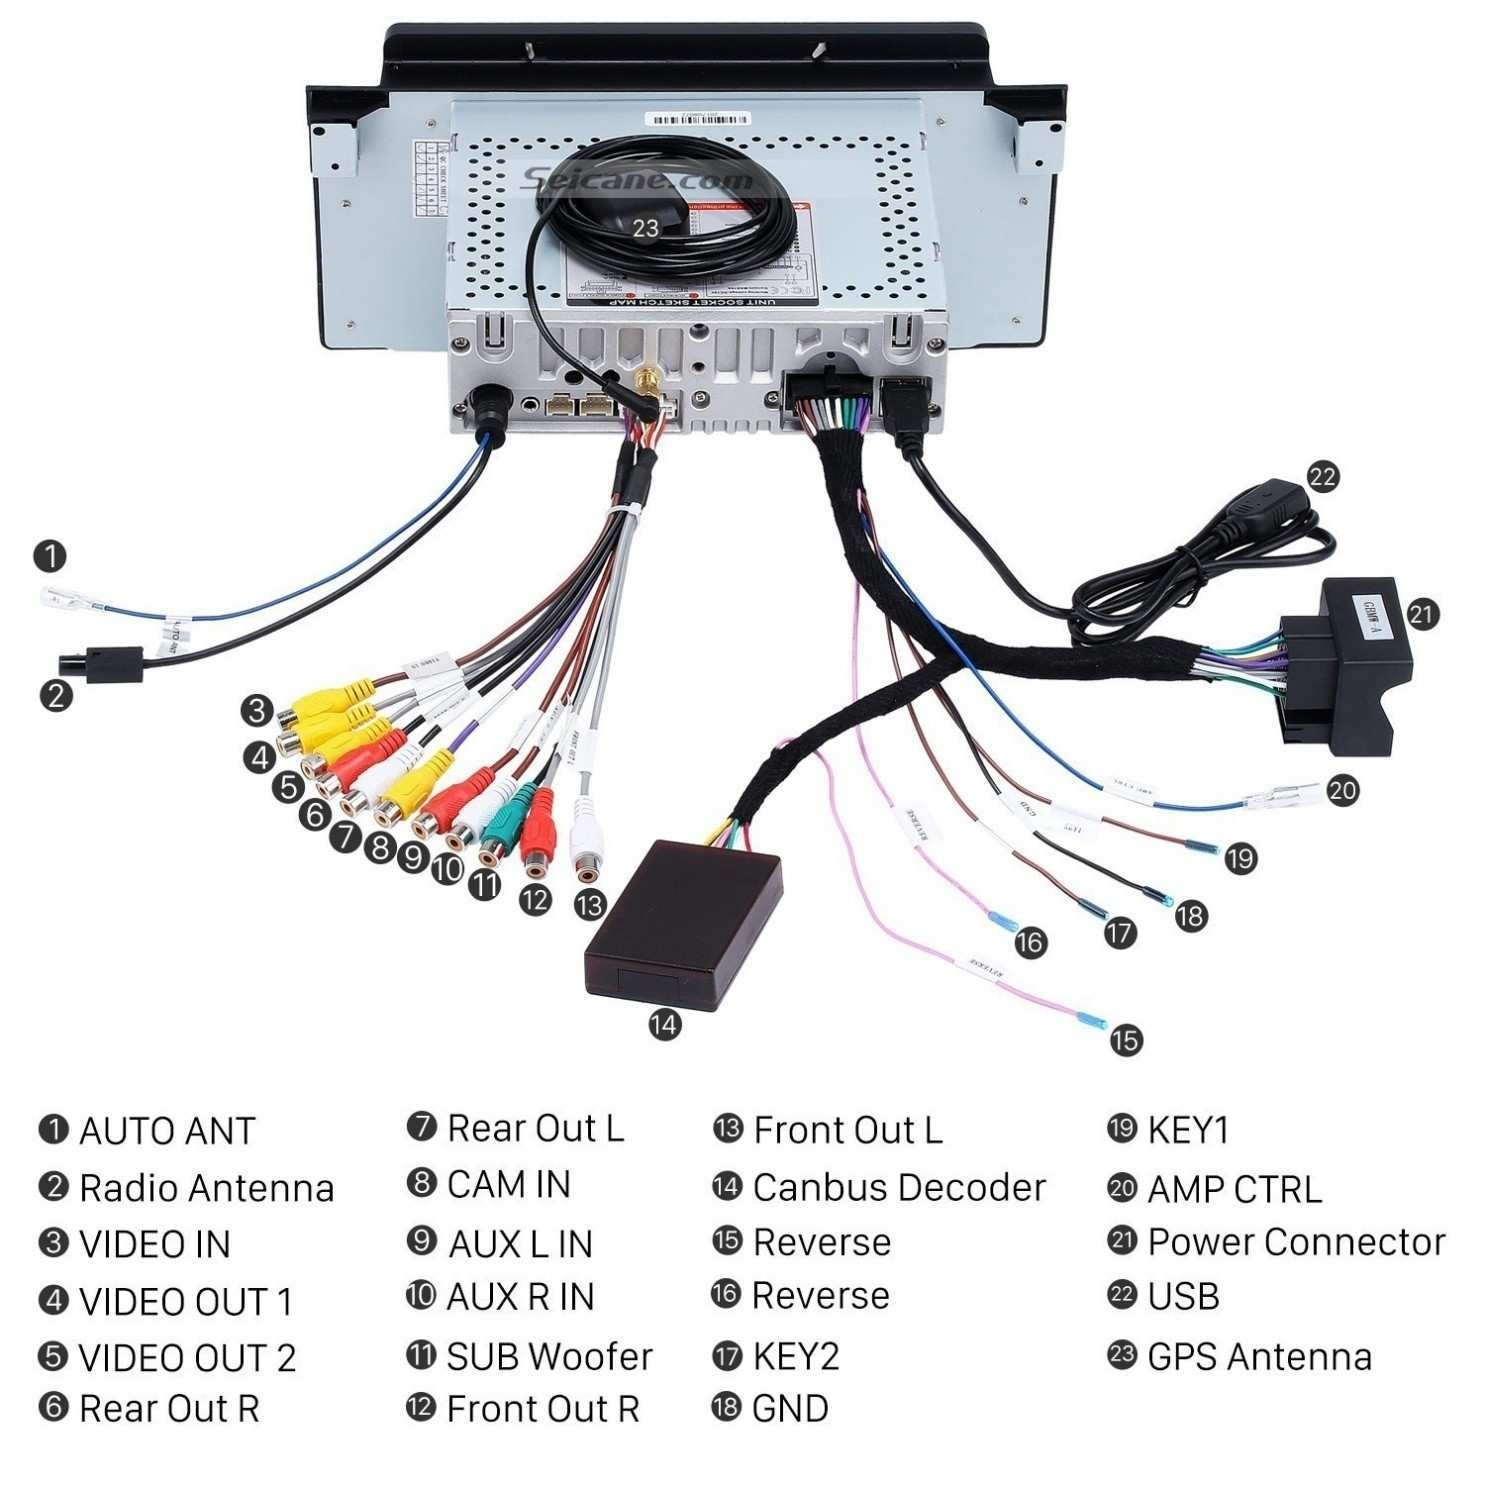 Car Audio System Diagram Car Stereo with Gps Fresh Mapmyindia In Car Gps Navigation Avn R Of Car Audio System Diagram